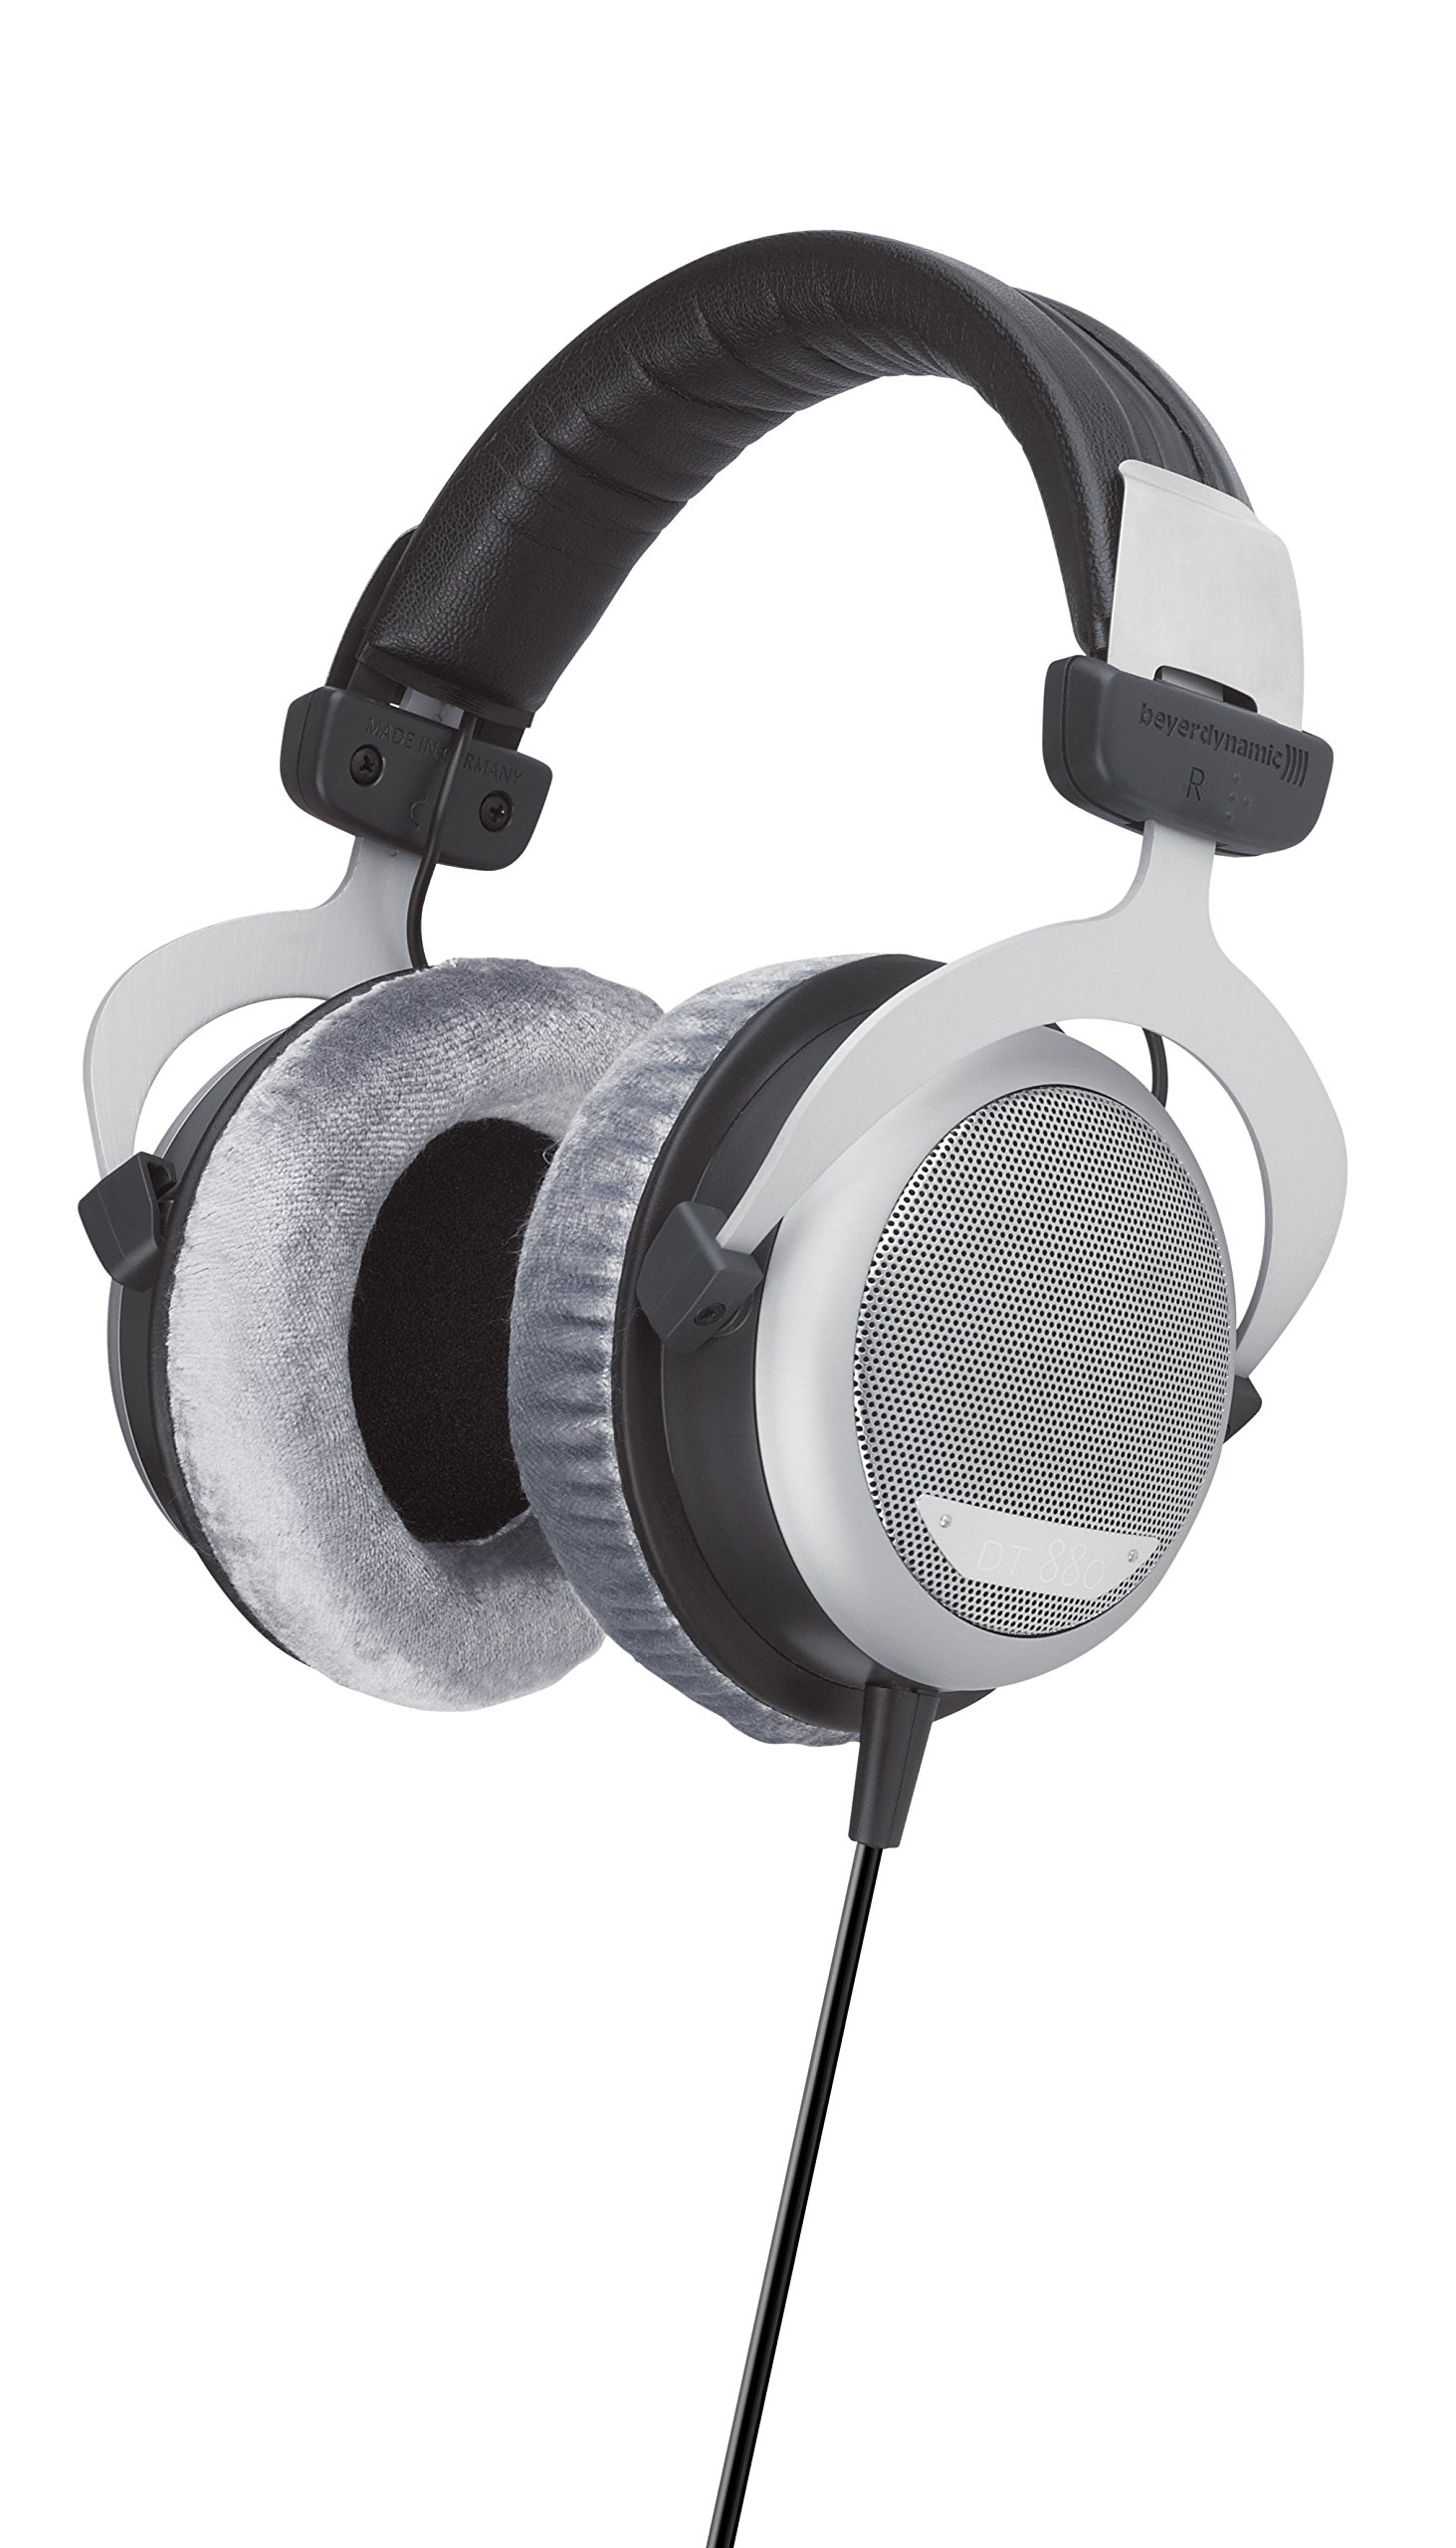 Beyerdynamic DT 880 Premium 600 ohm HiFi headphones by beyerdynamic